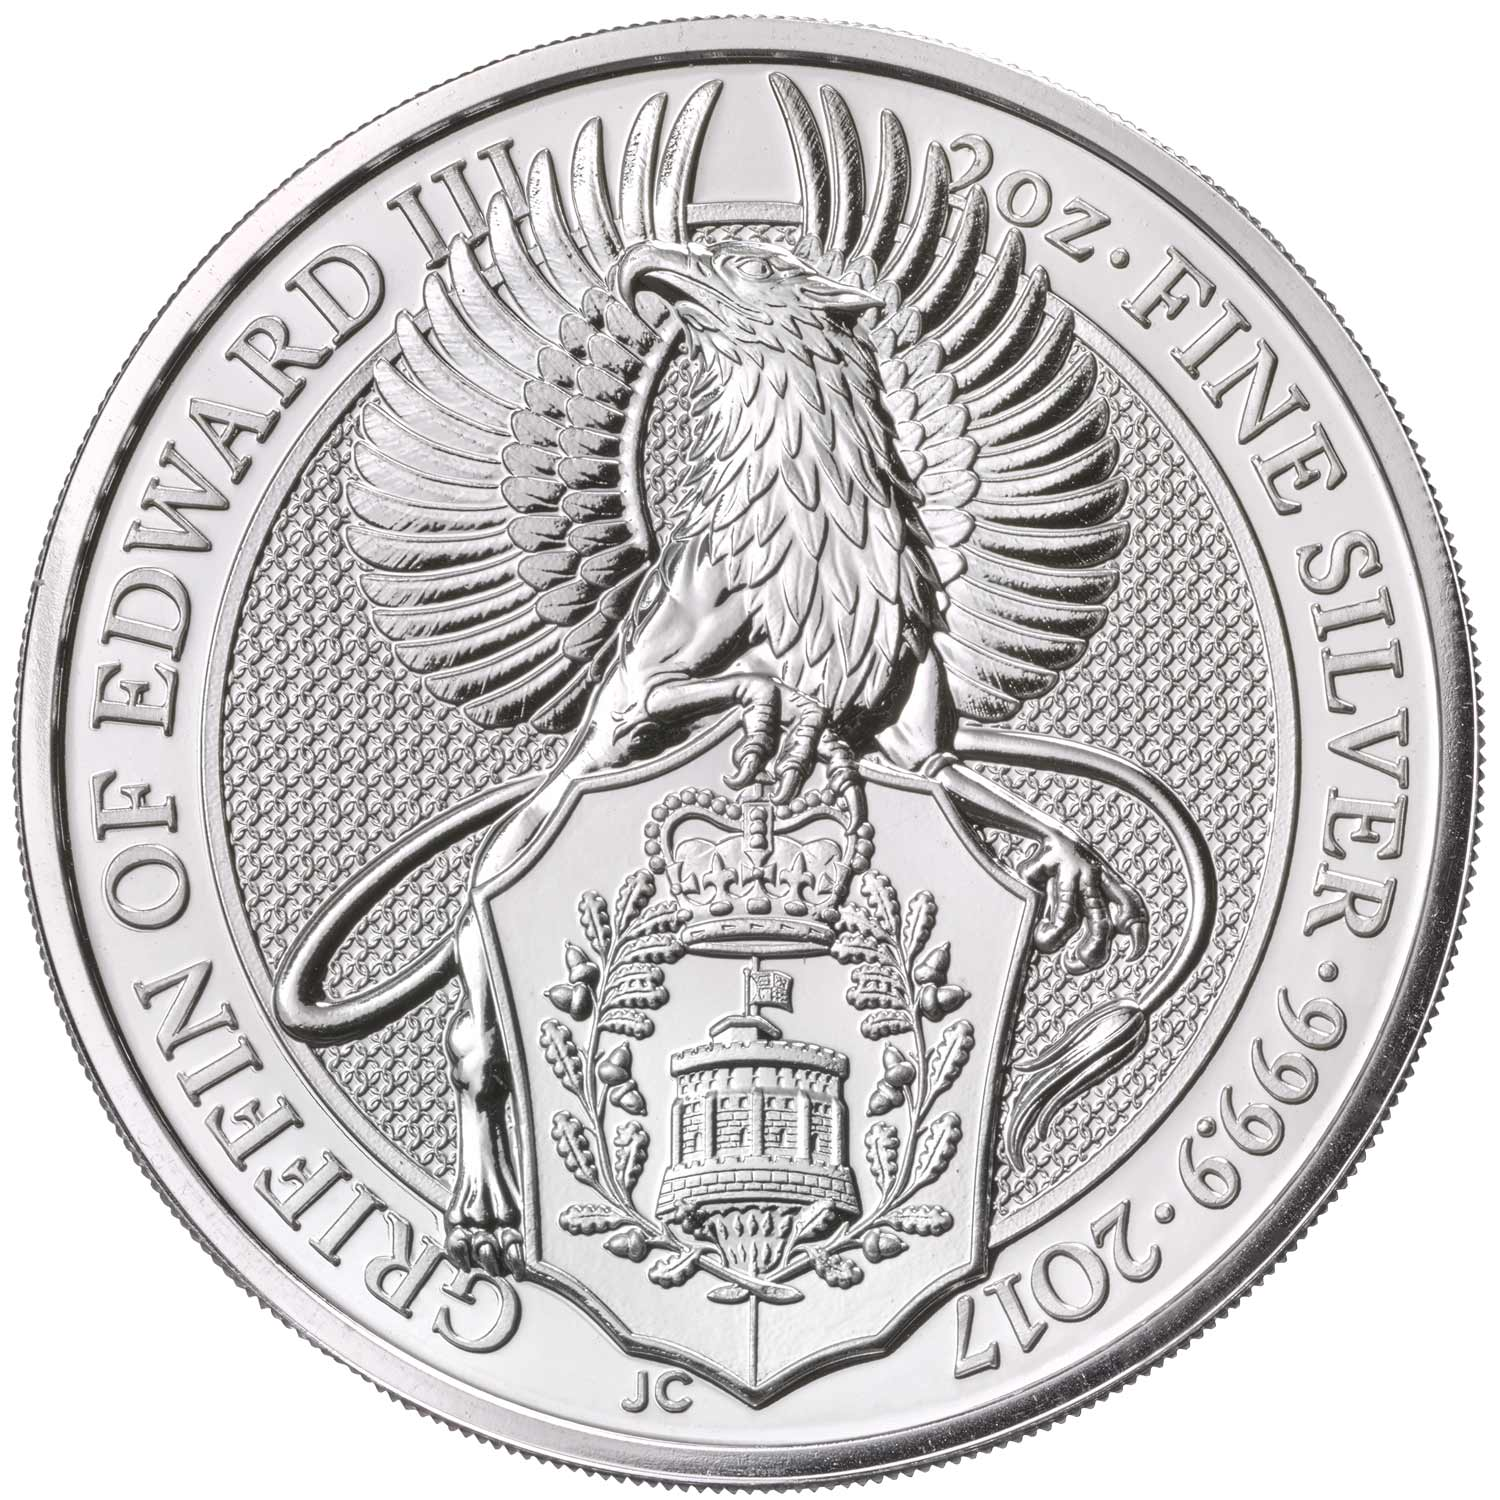 2017 2-ounce silver Griffin from the Royal Mint.  The coin is also offered in gold in 1-ounce and 1/4-ounce sizes.